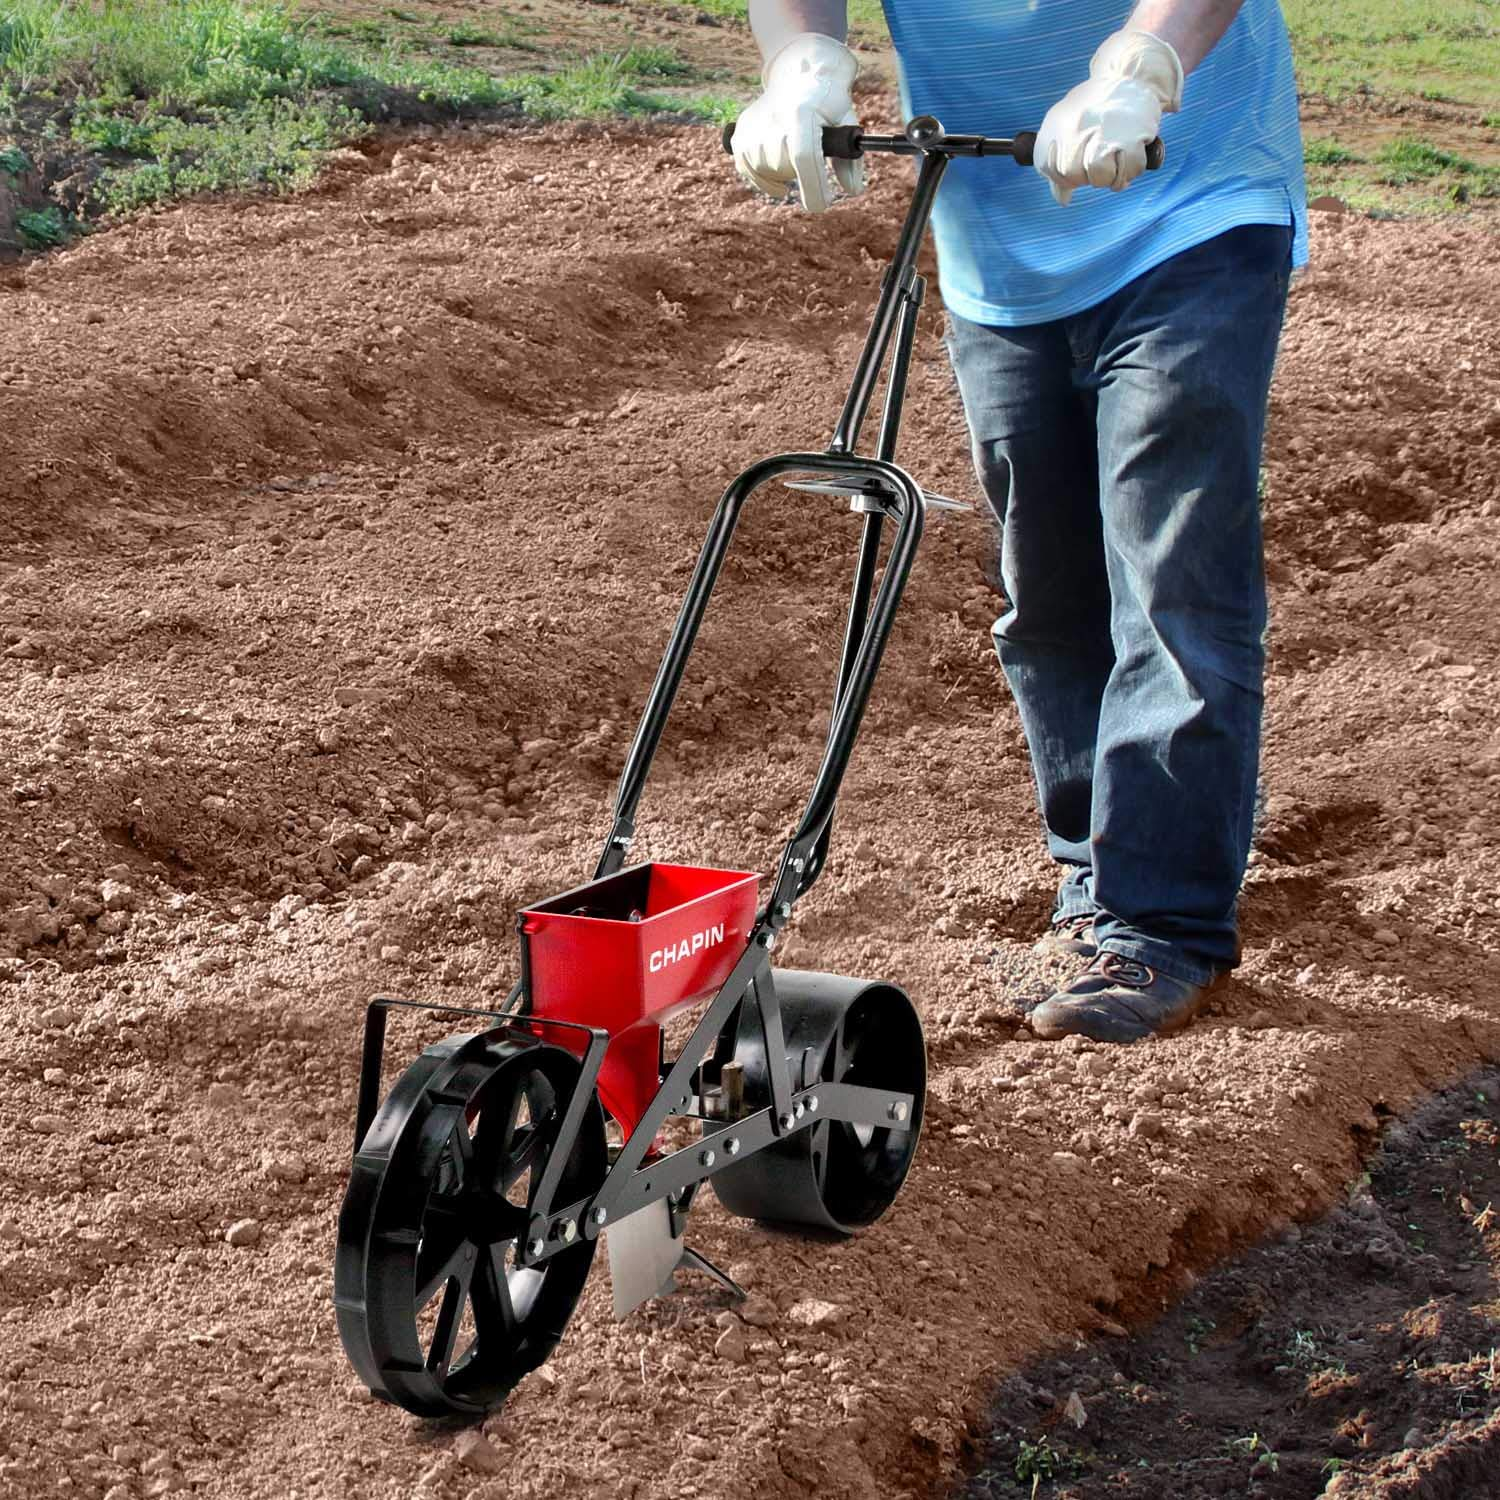 Chapin 8701B Garden Push seeder With 6 Seed Plates for Up to 20 Varieties Of Seeds, (1 Garden Seeder/Package) by Chapin International (Image #5)